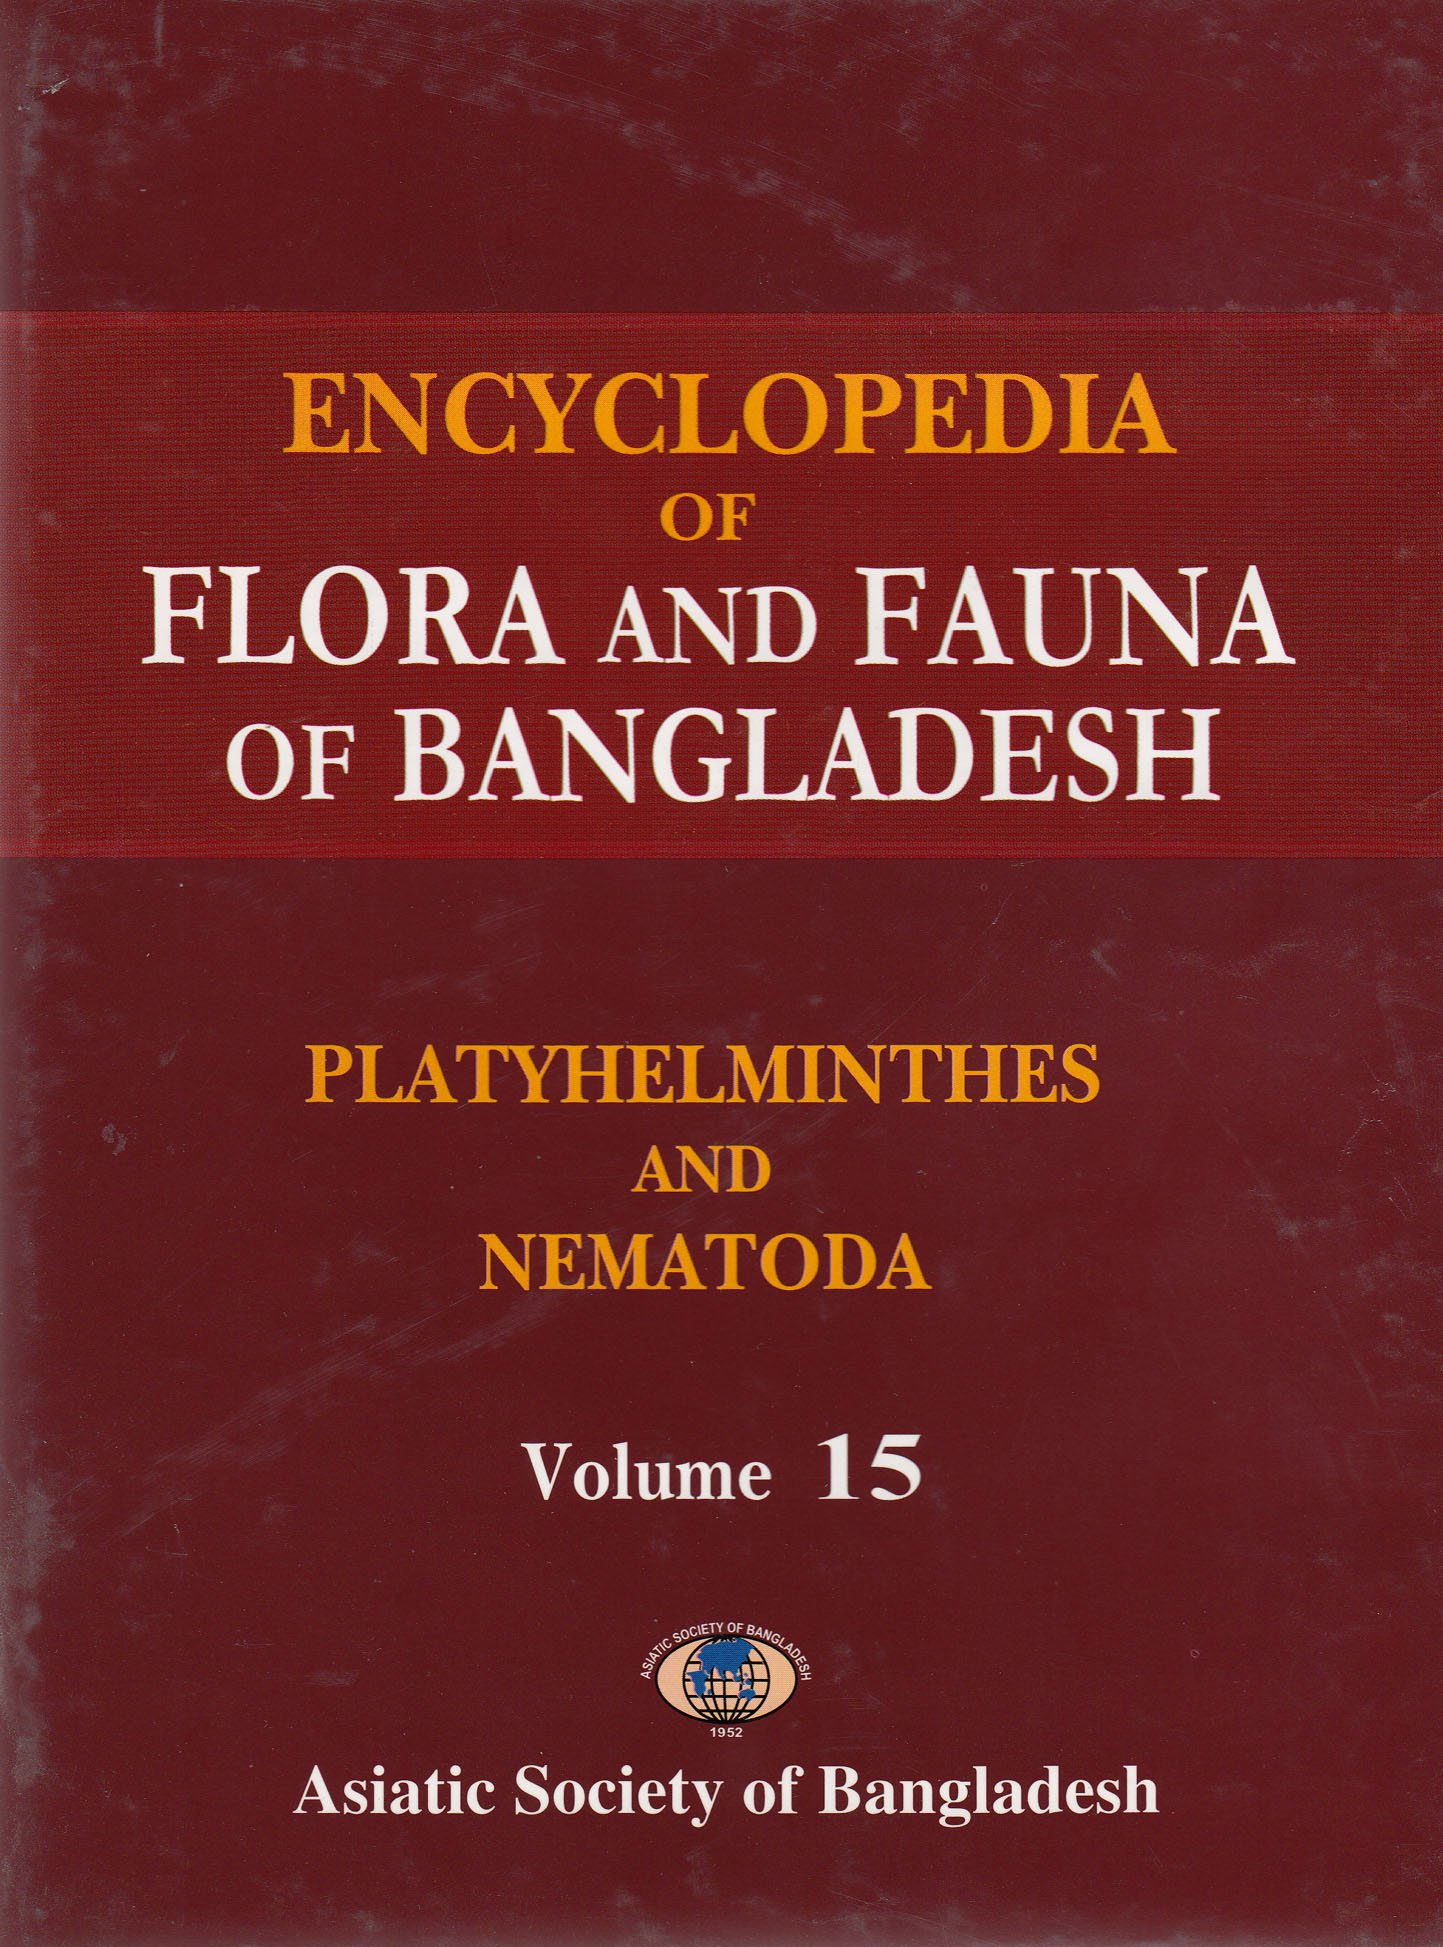 Download Encyclopedia of Flora and Fauna of Bangladesh: Platyhelminthes and Nematoda (Volume 15) pdf epub